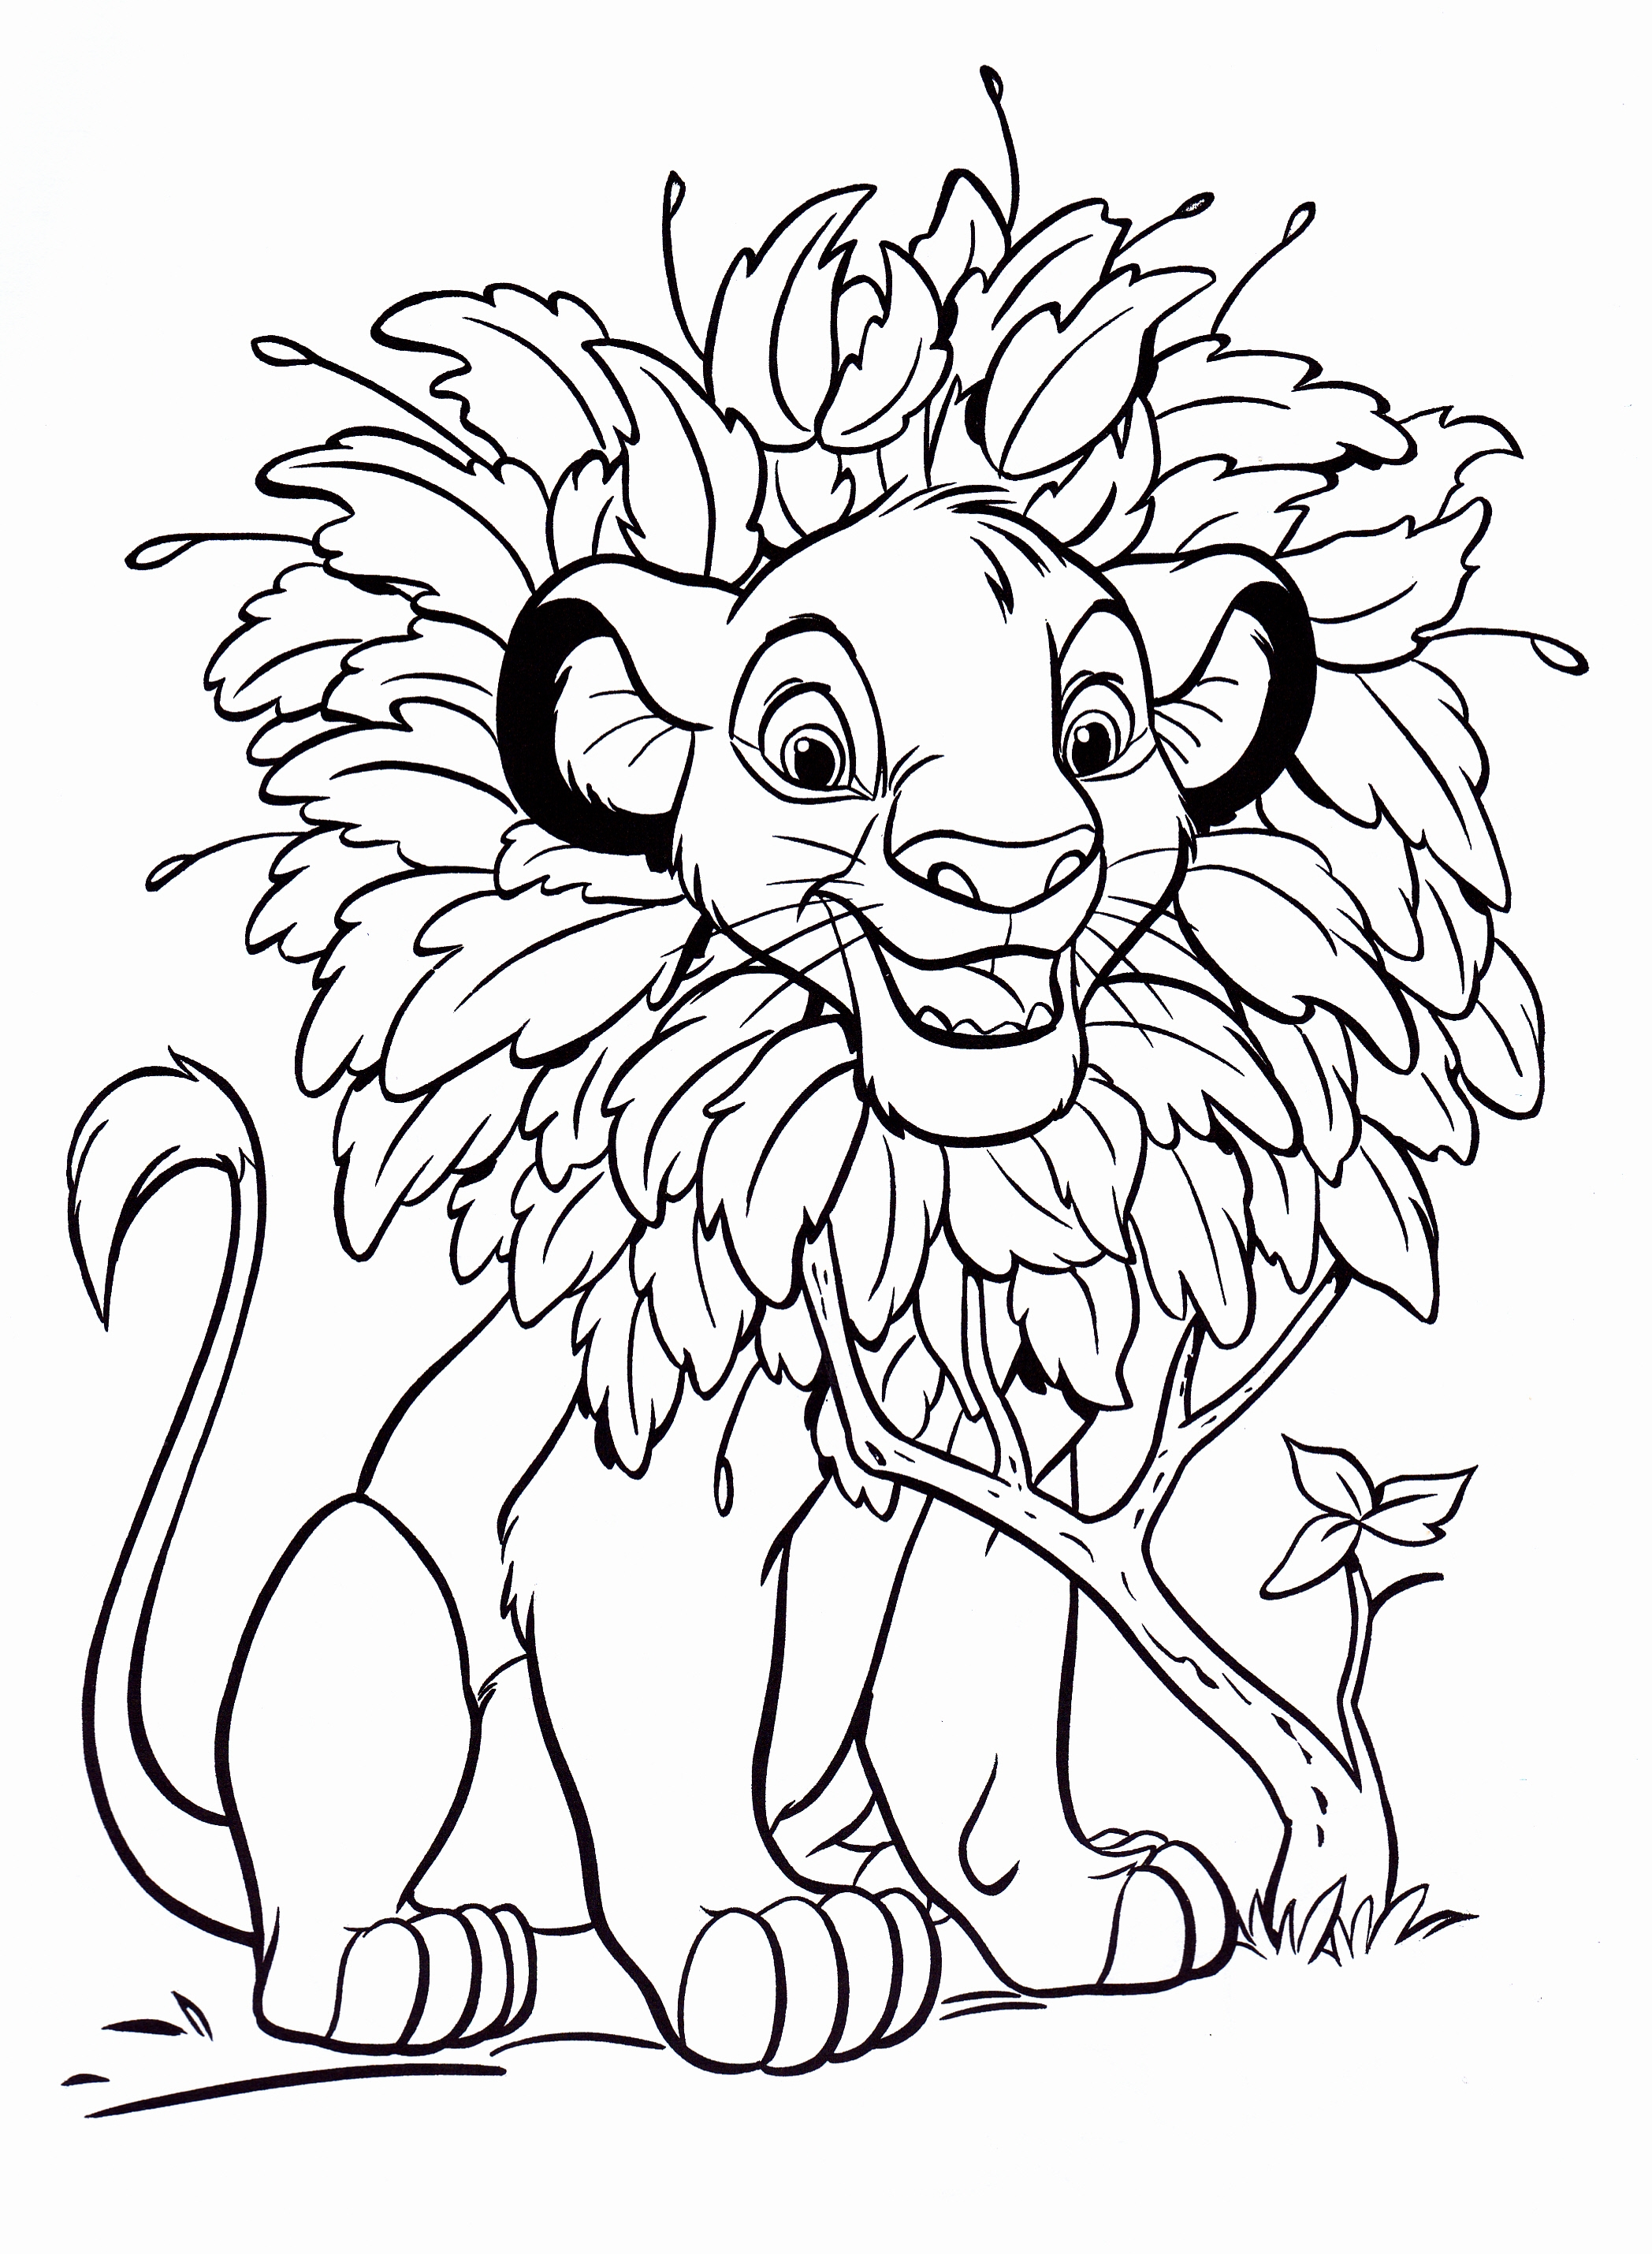 disney color page - free printable simba coloring pages for kids